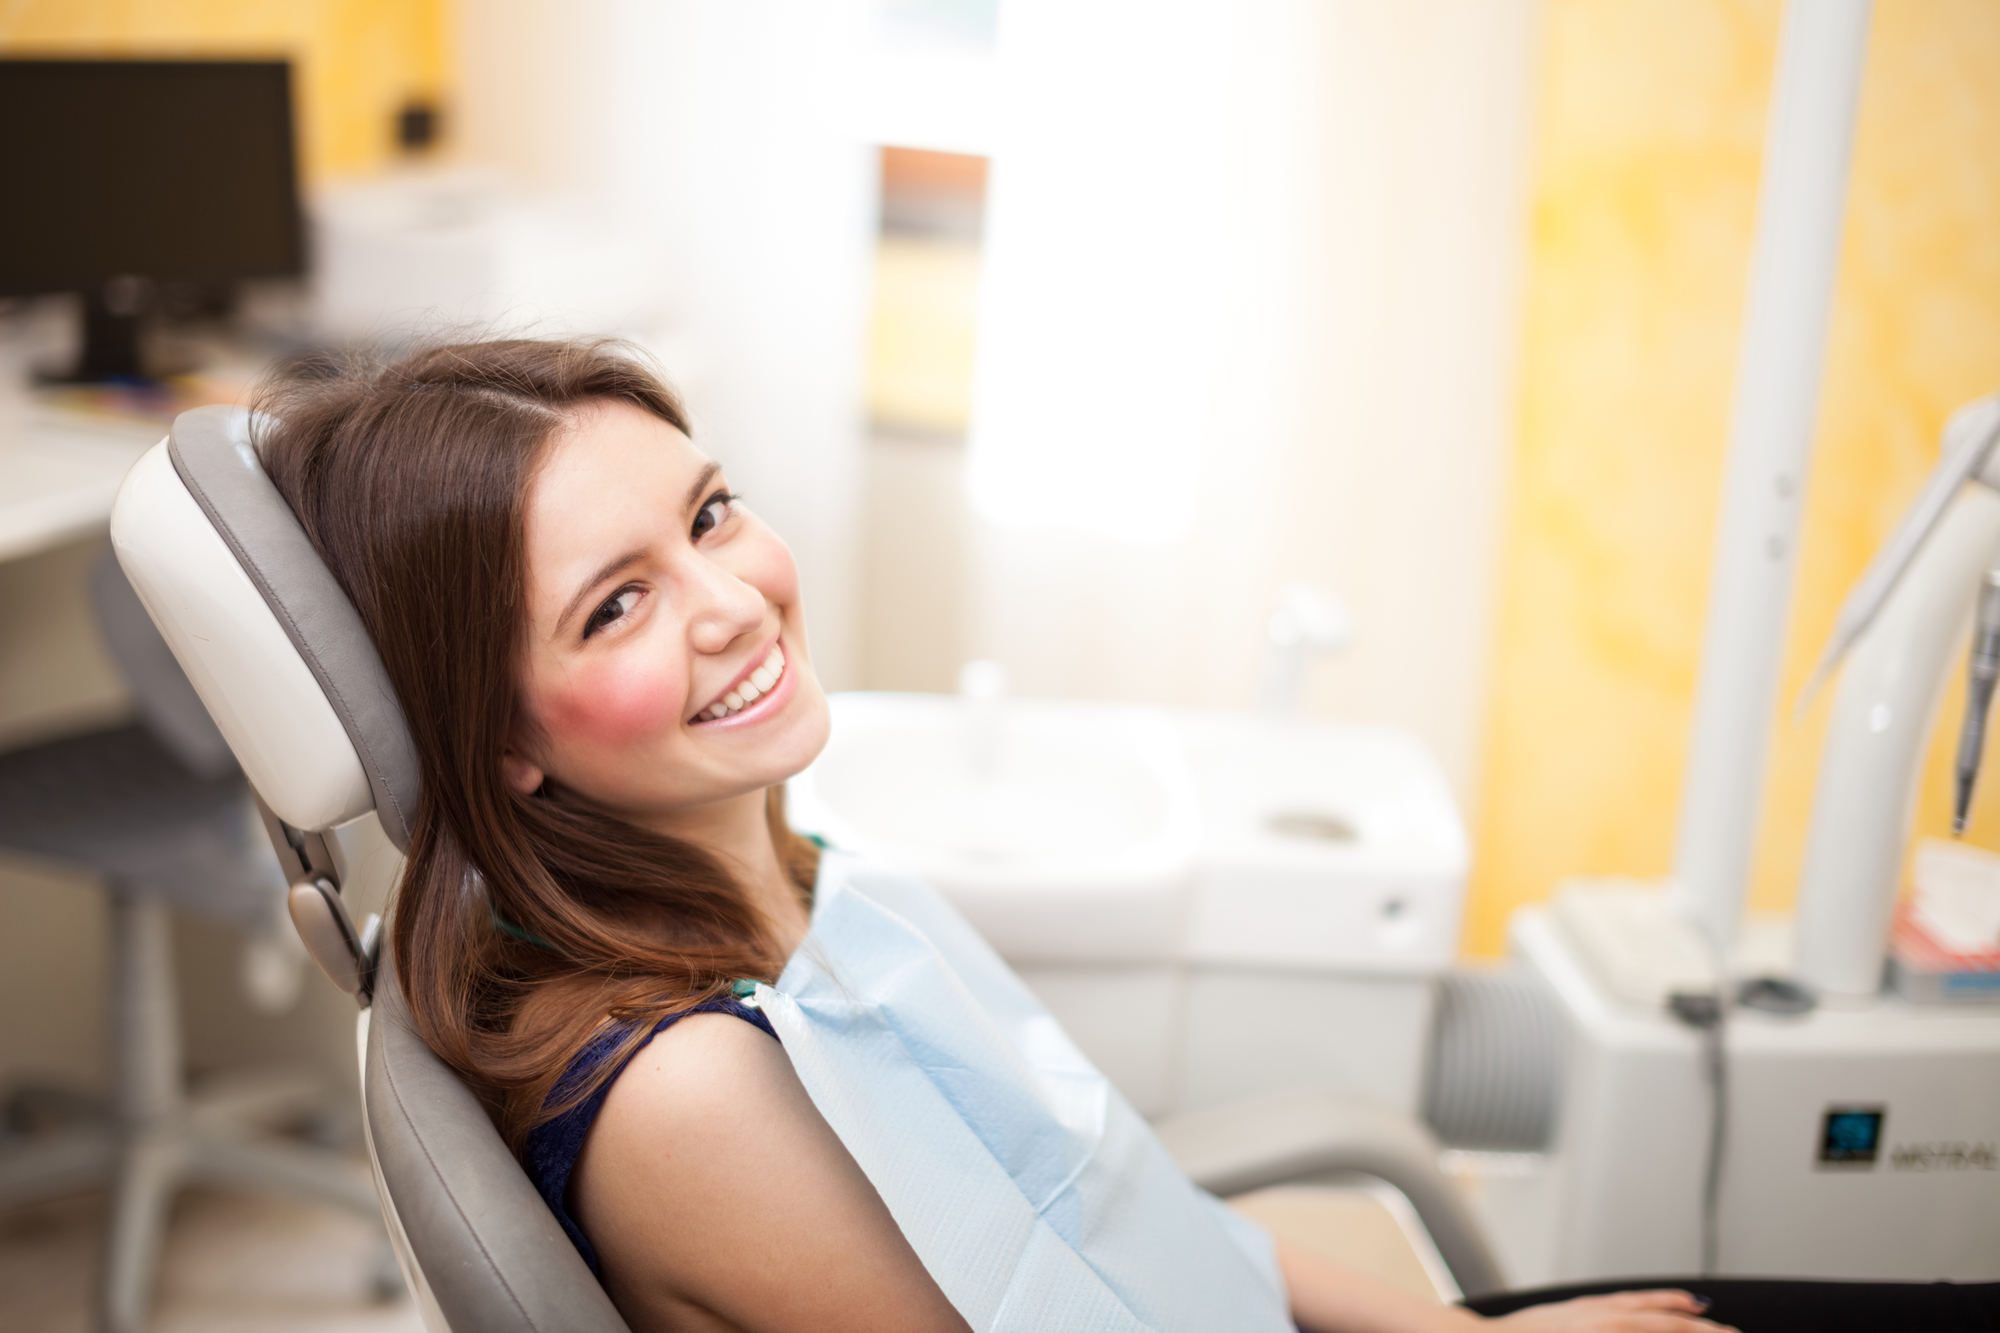 who is the best dentist in stuart fl?